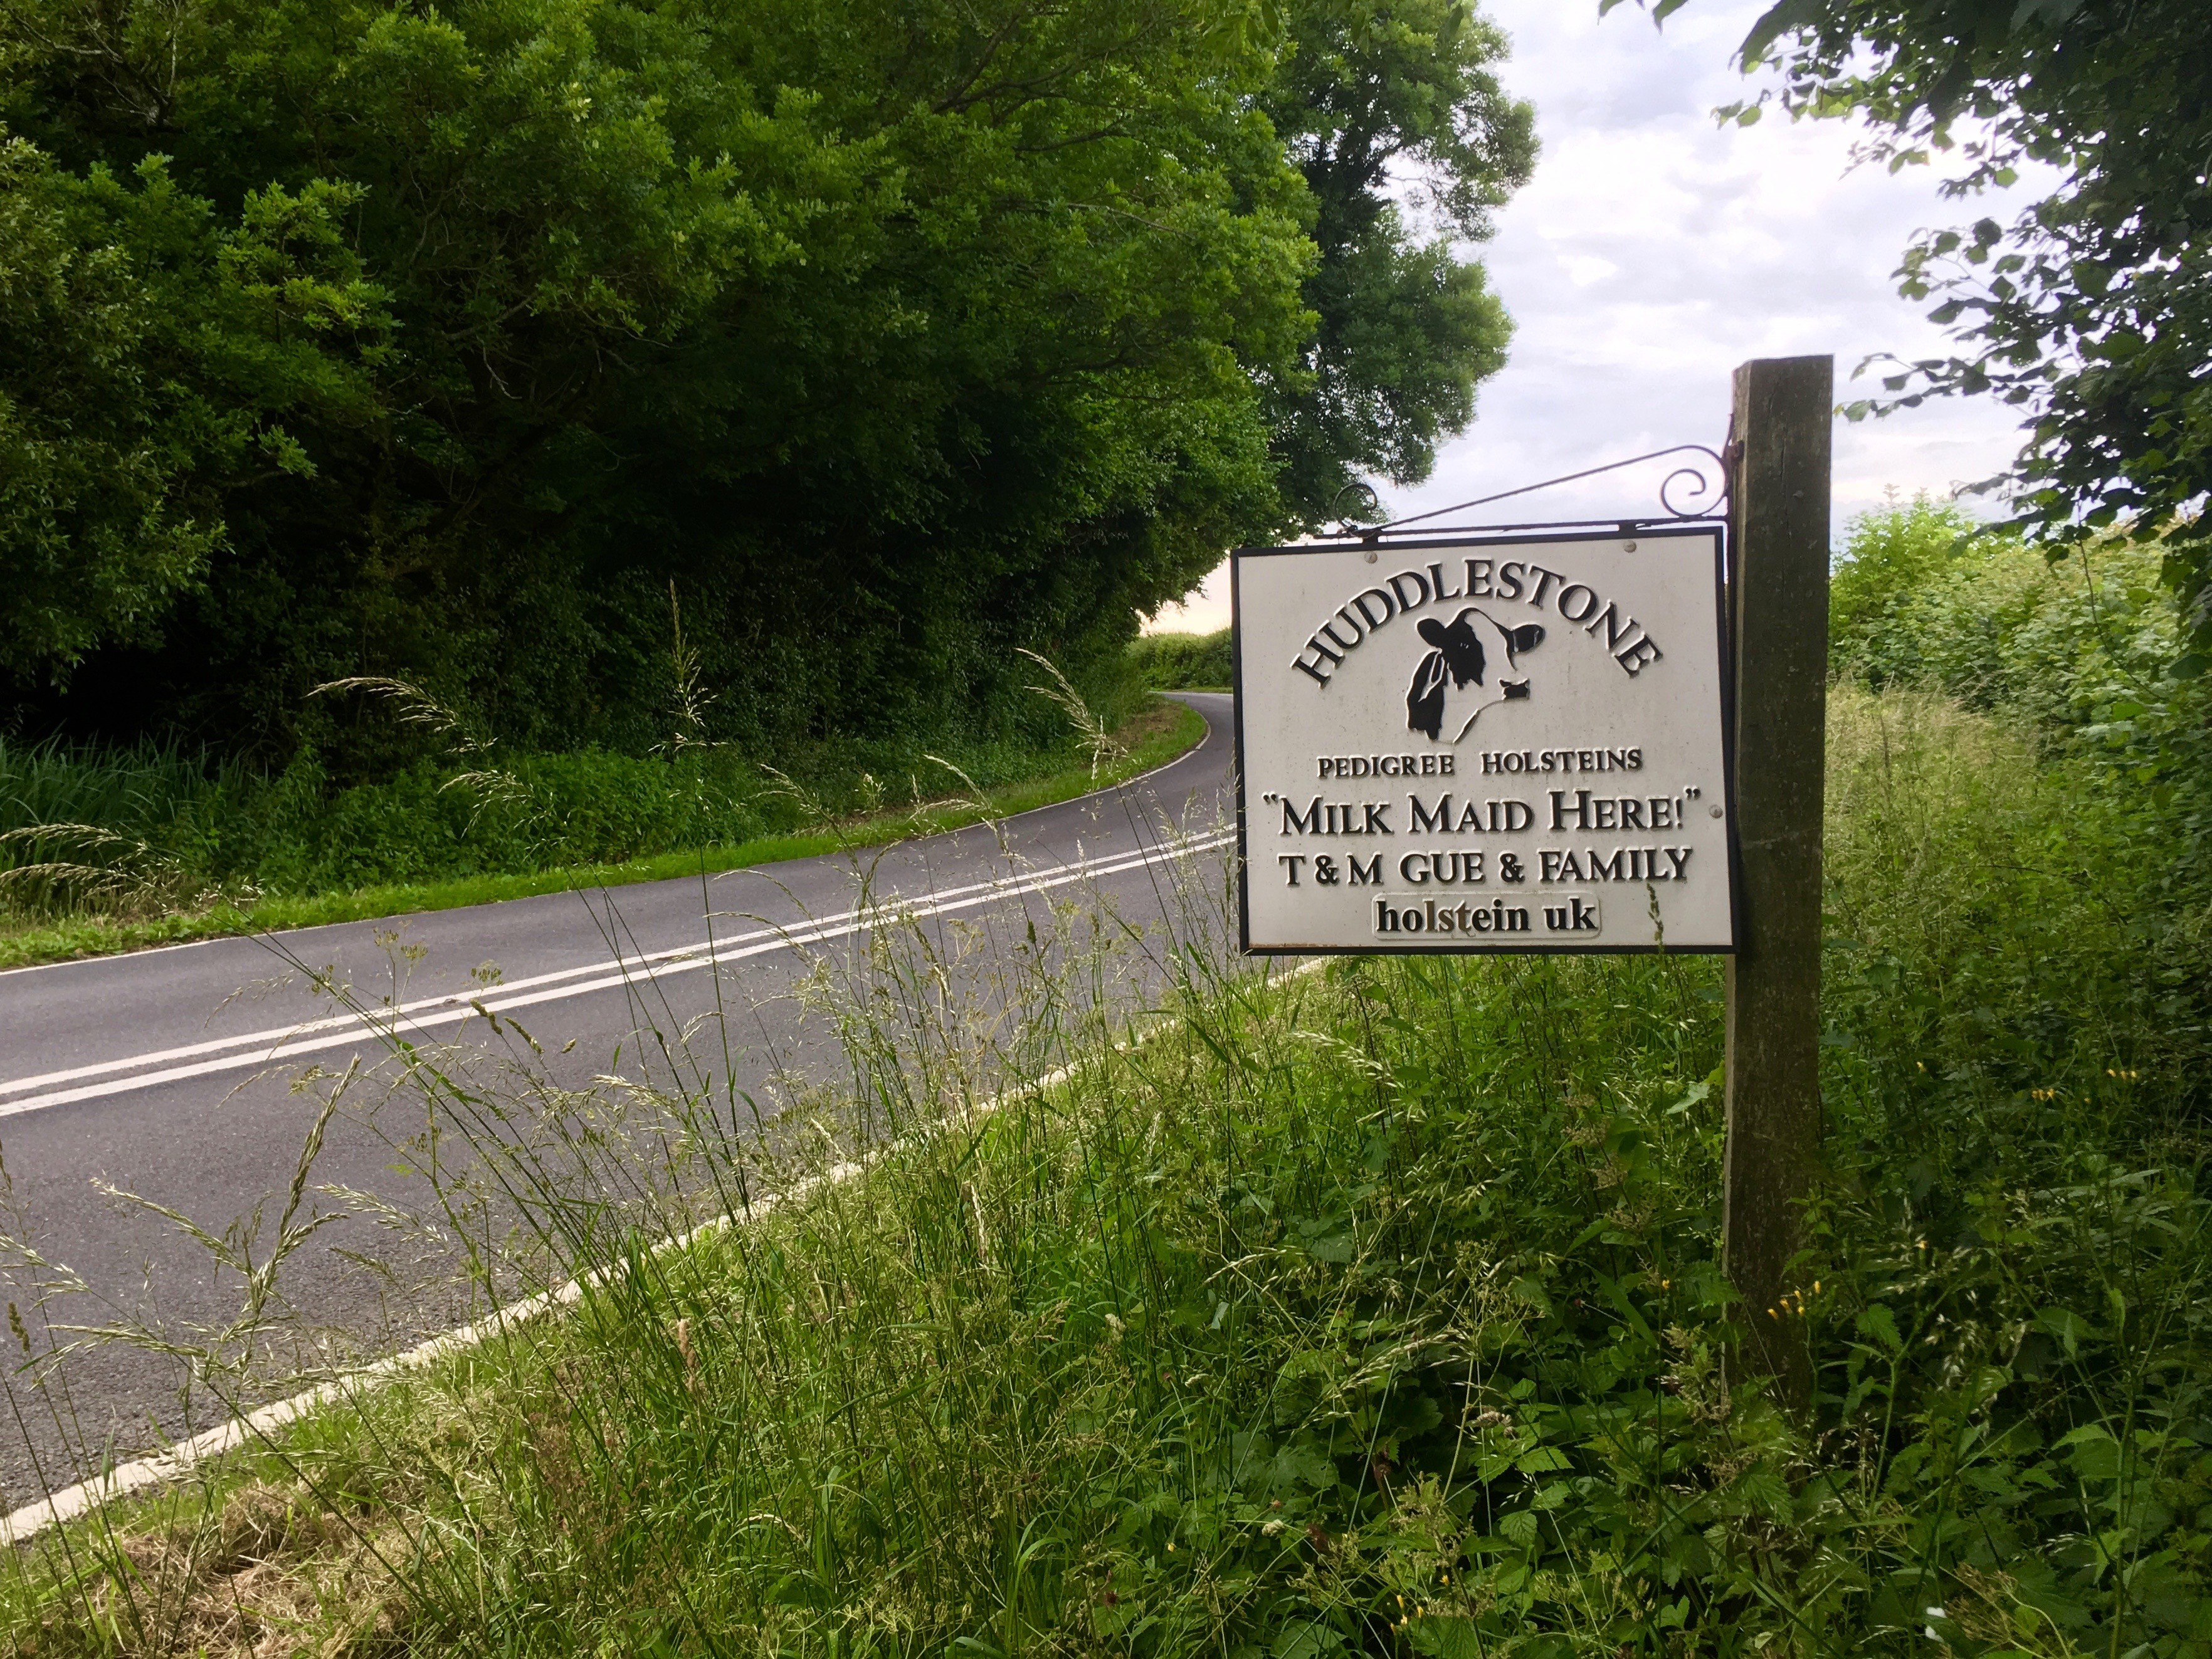 The herd sign outside Tim Gue's farm